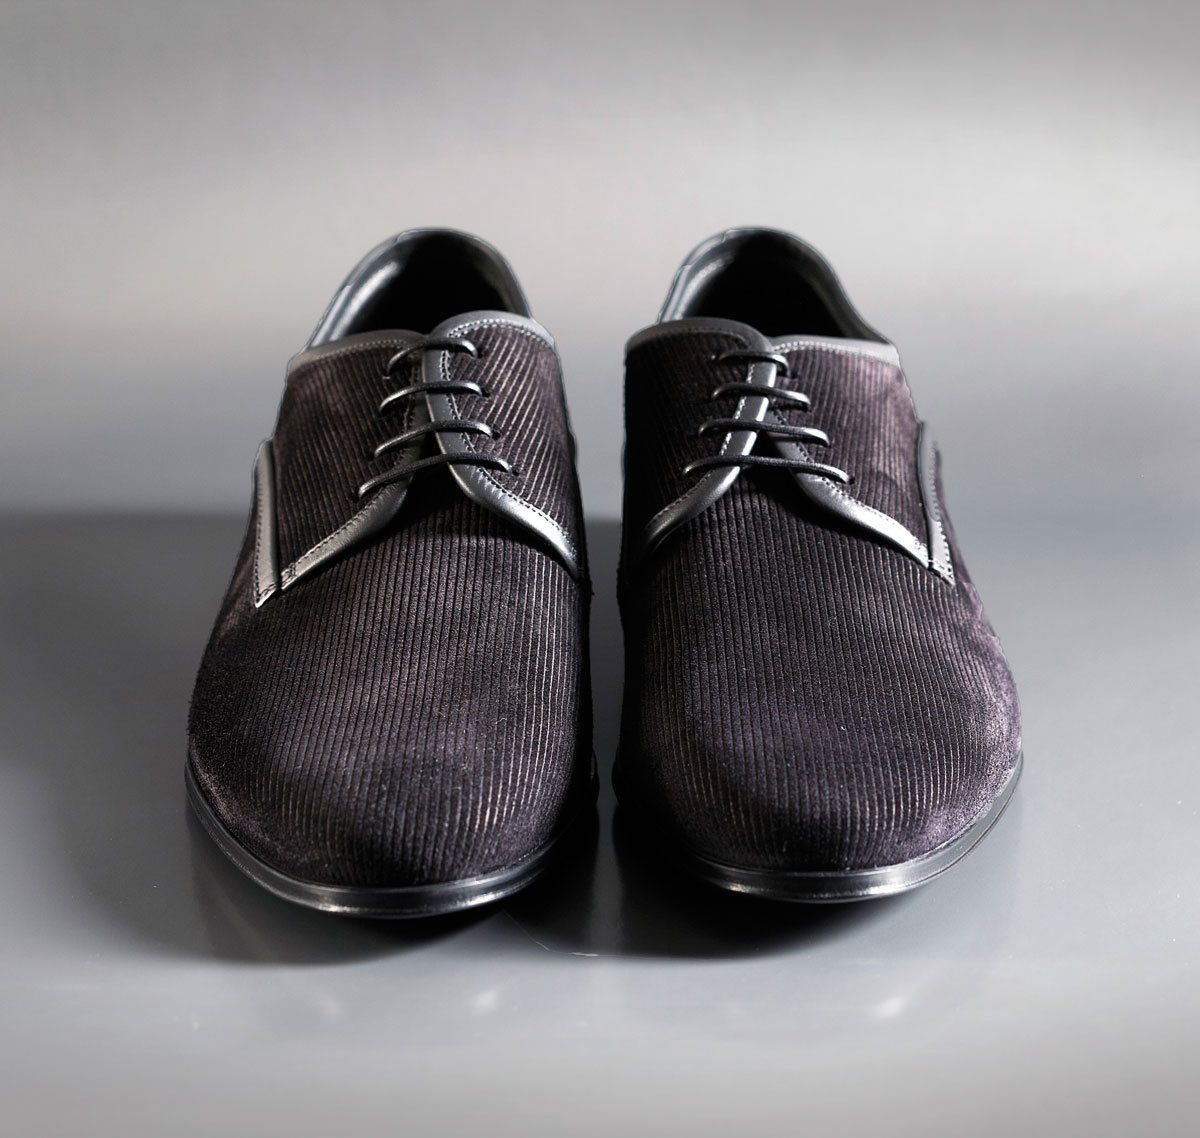 m09-chaussures-pour-homme-hugo-boss